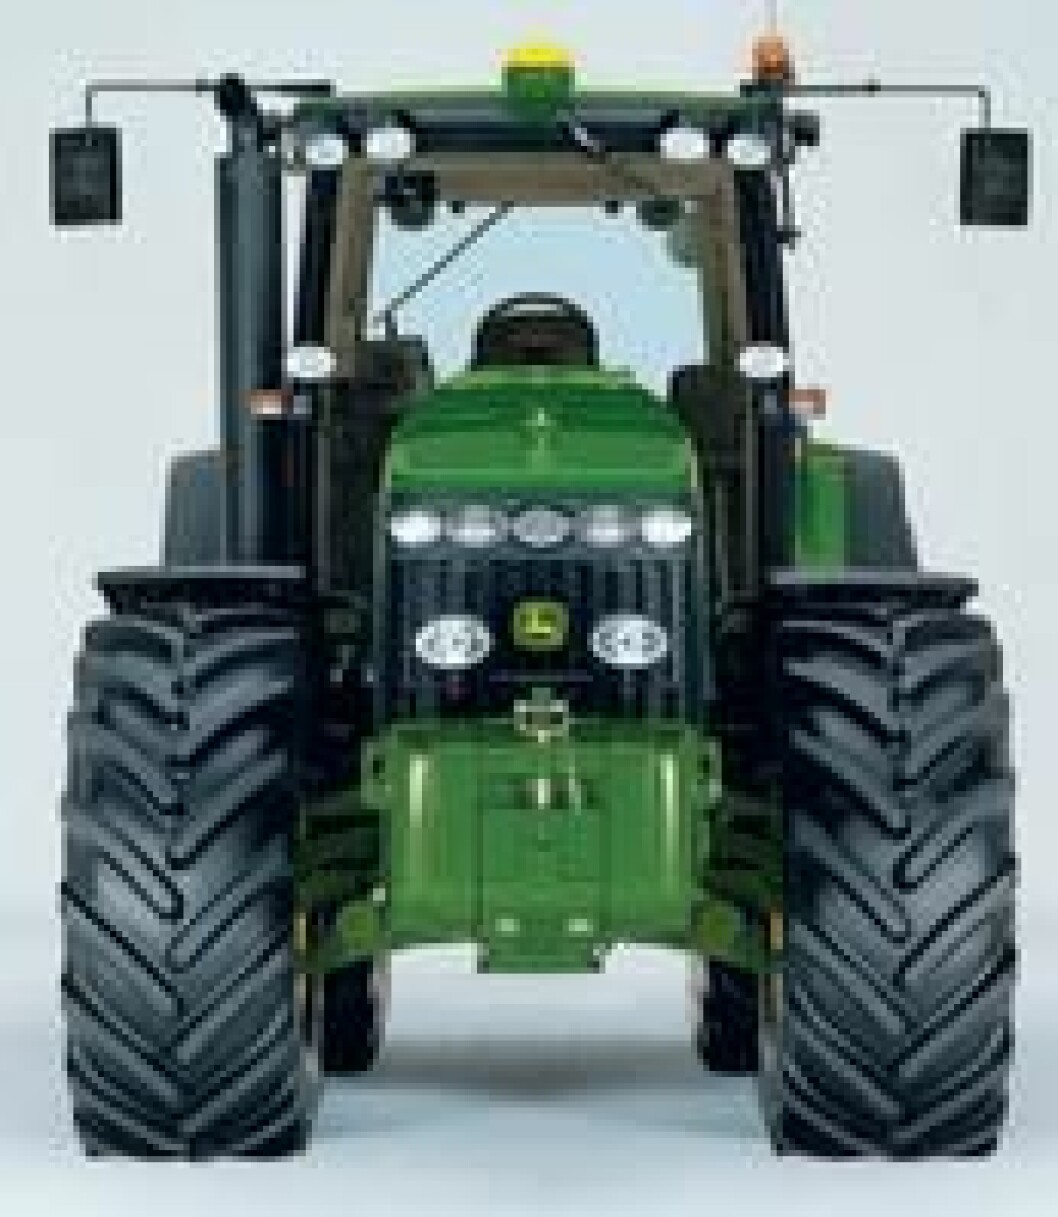 jd 8030 front 06